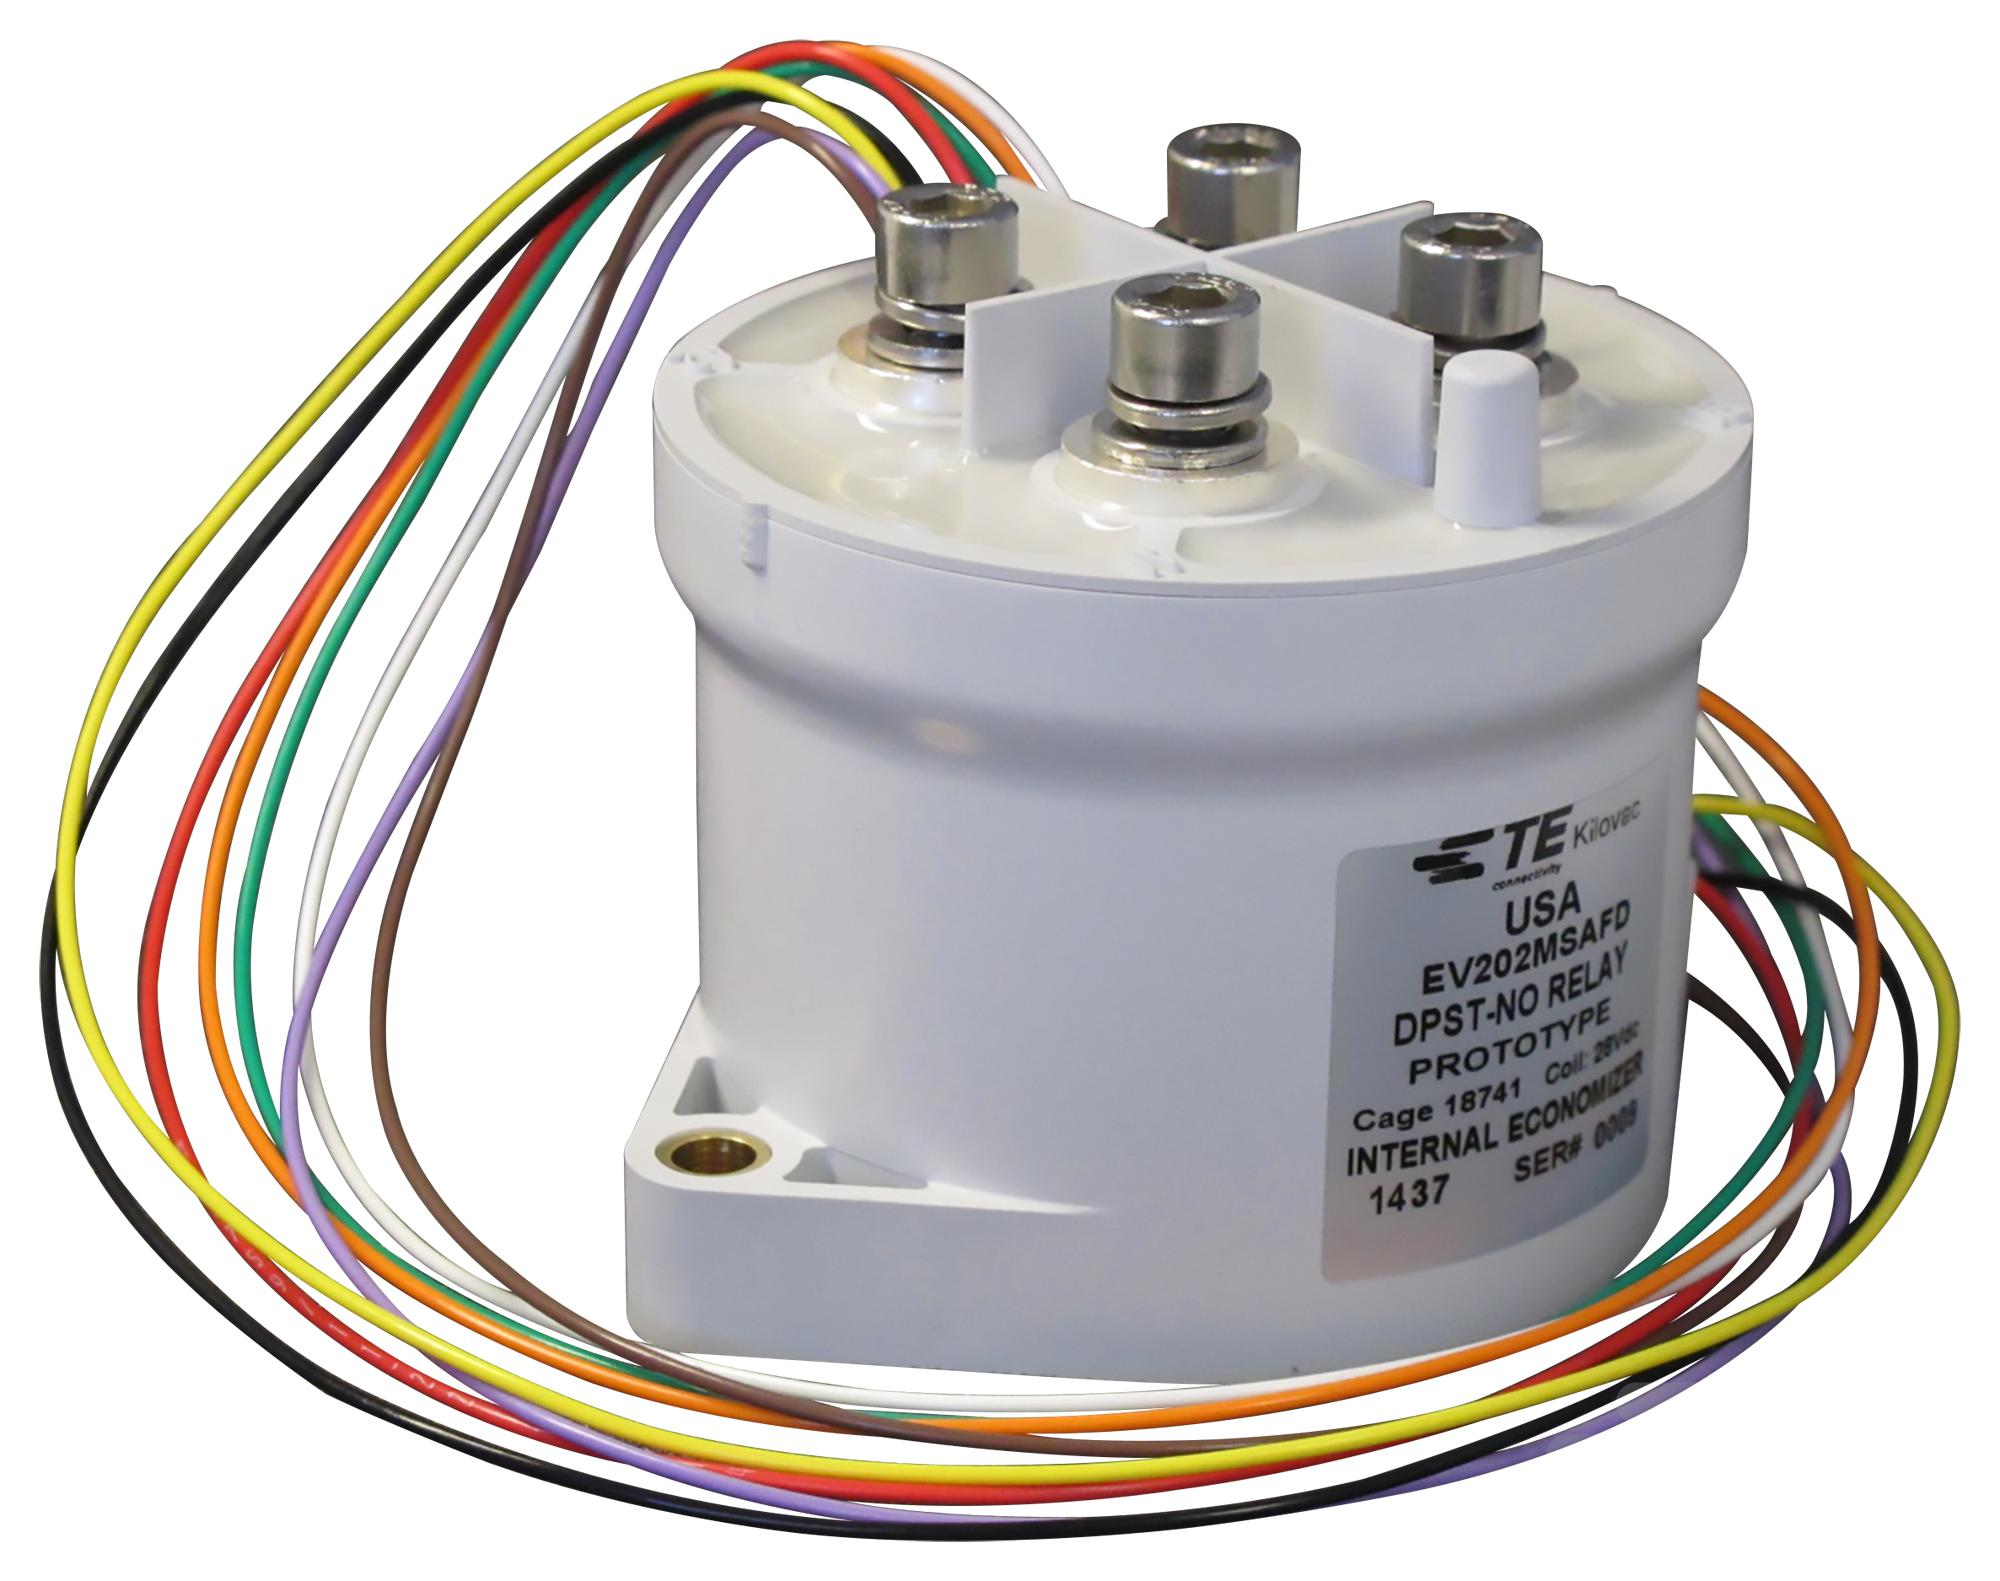 hight resolution of ev202avand contactor